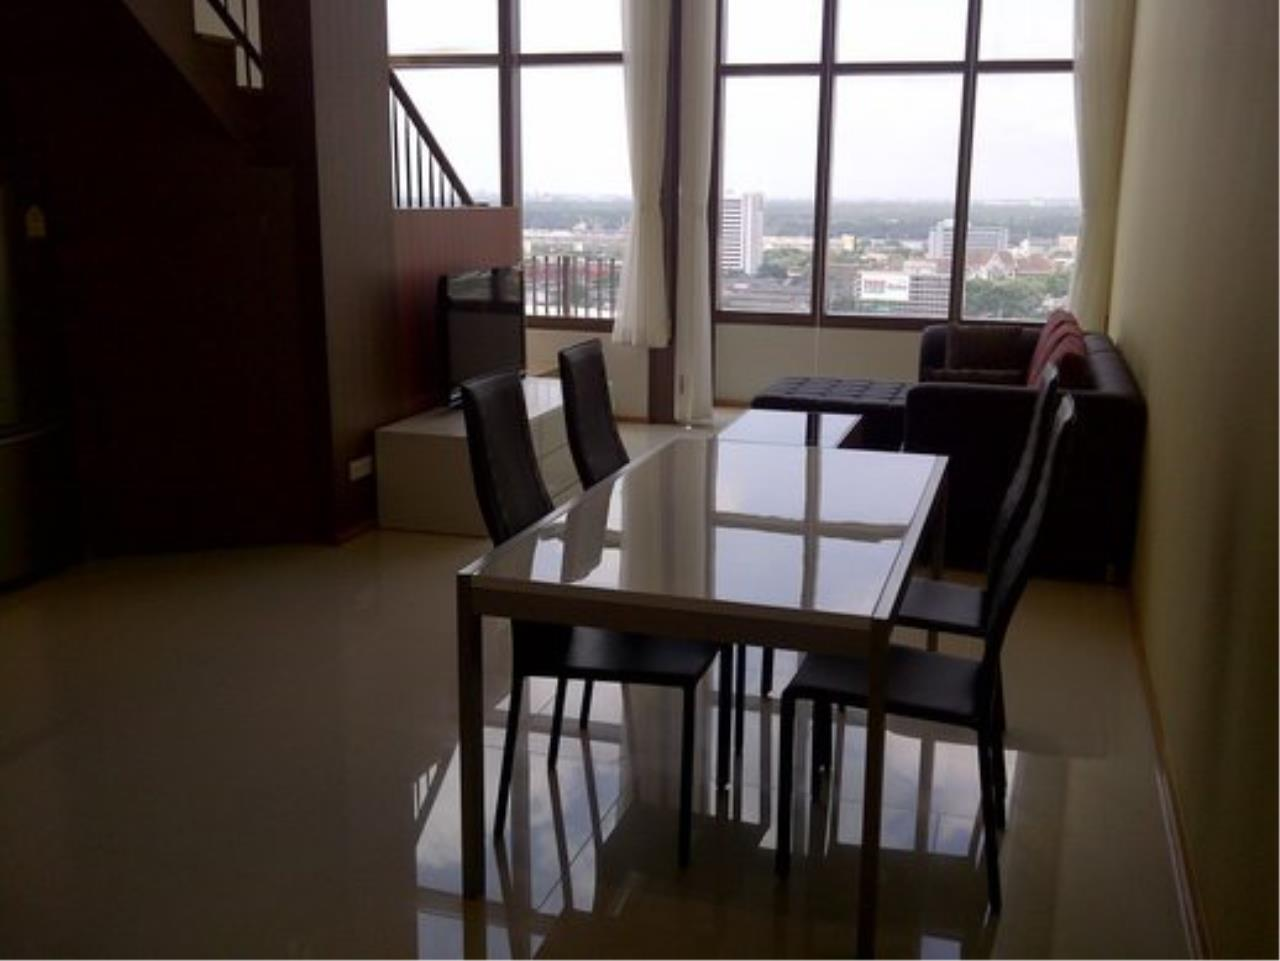 Piri Property Agency's Duplex 1 Bedroom Condo in the Emporio Place building for rent on high floor 5